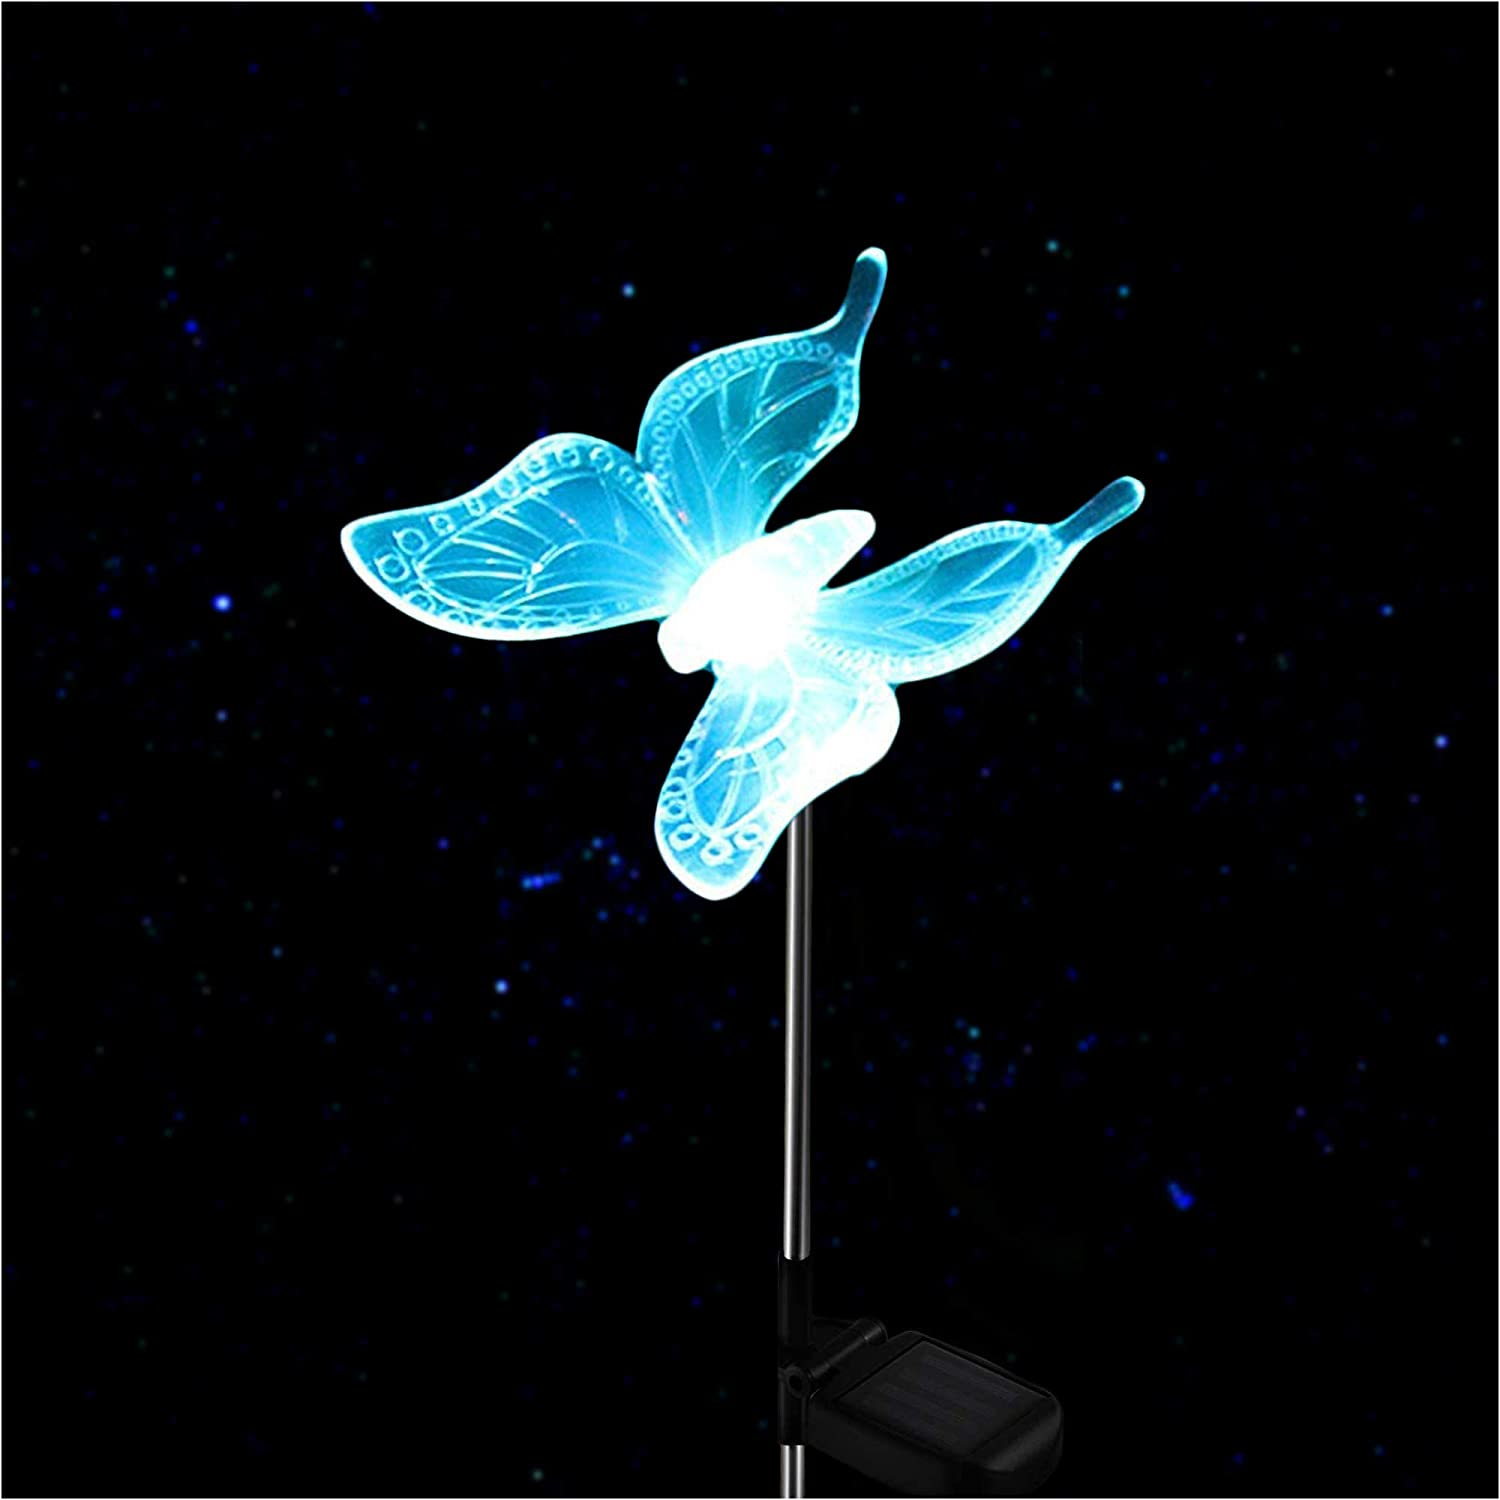 Outdoor Solar Garden Stake Light - Color Changing Decorative LED Stake Lamp In-ground Landscaping Lighting for Garden Patio Yard Lawn Pathway Flower Bed Decor Decorations Figurine Butterfly